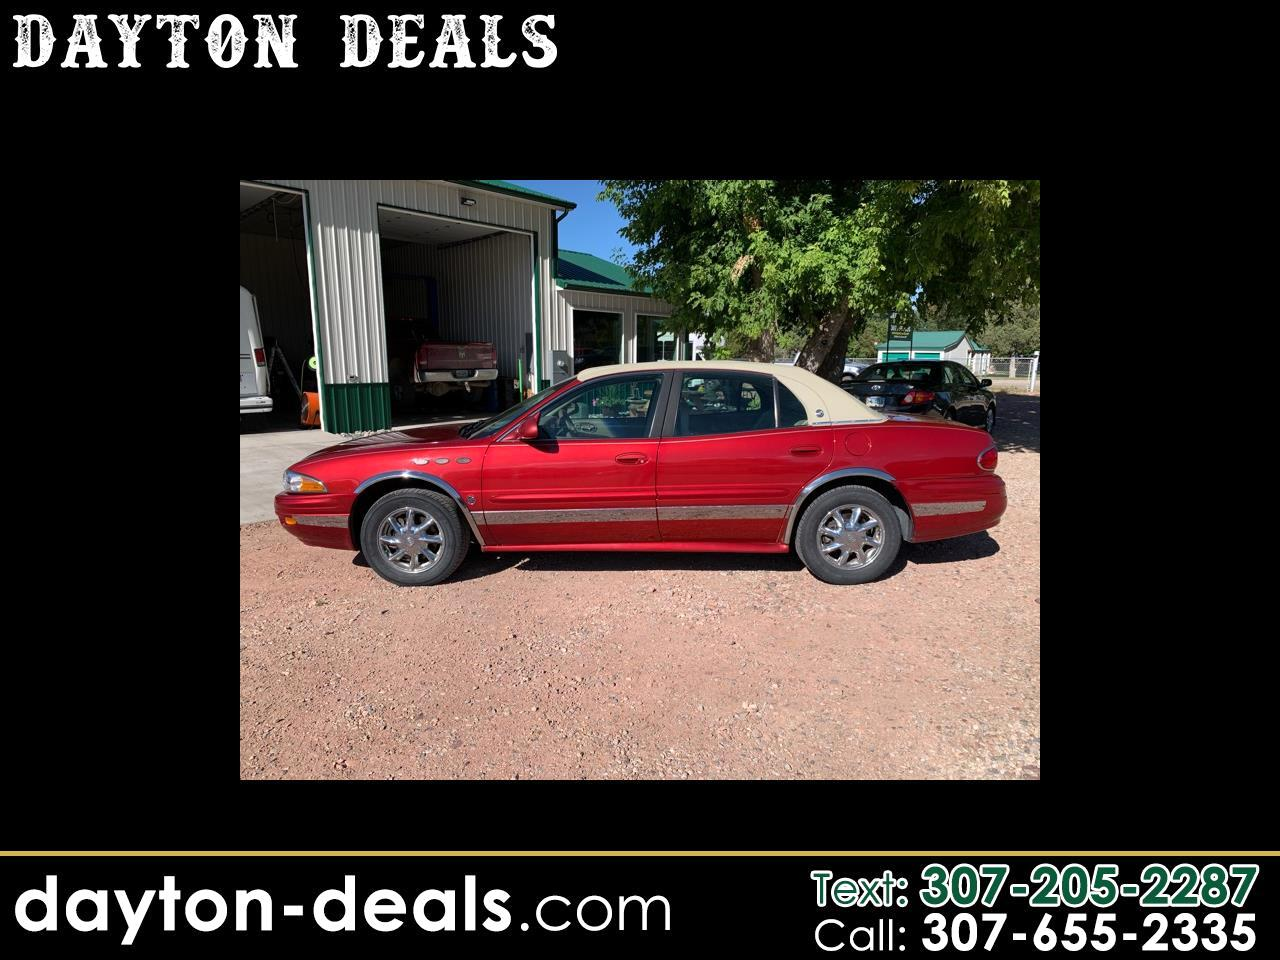 used 2004 buick lesabre limited for sale in dayton wy 82836 dayton deals dayton wy 82836 dayton deals